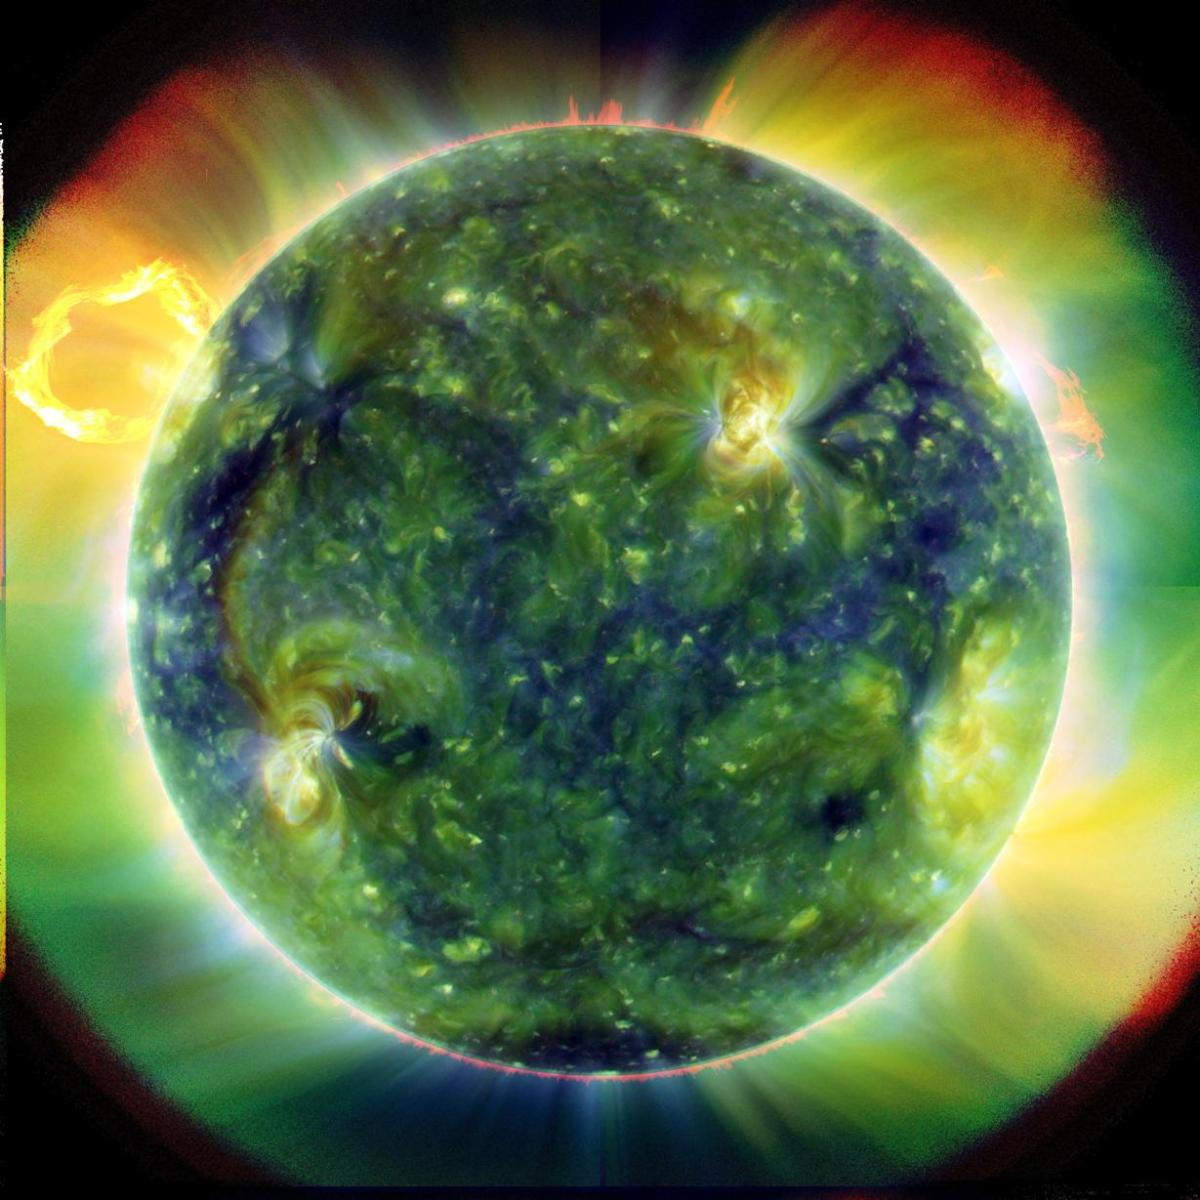 FEMA: 'The Threat Is Real' - Unpublished Internal Report Warns 4-10 Years Without Electricity After Major Solar Storm